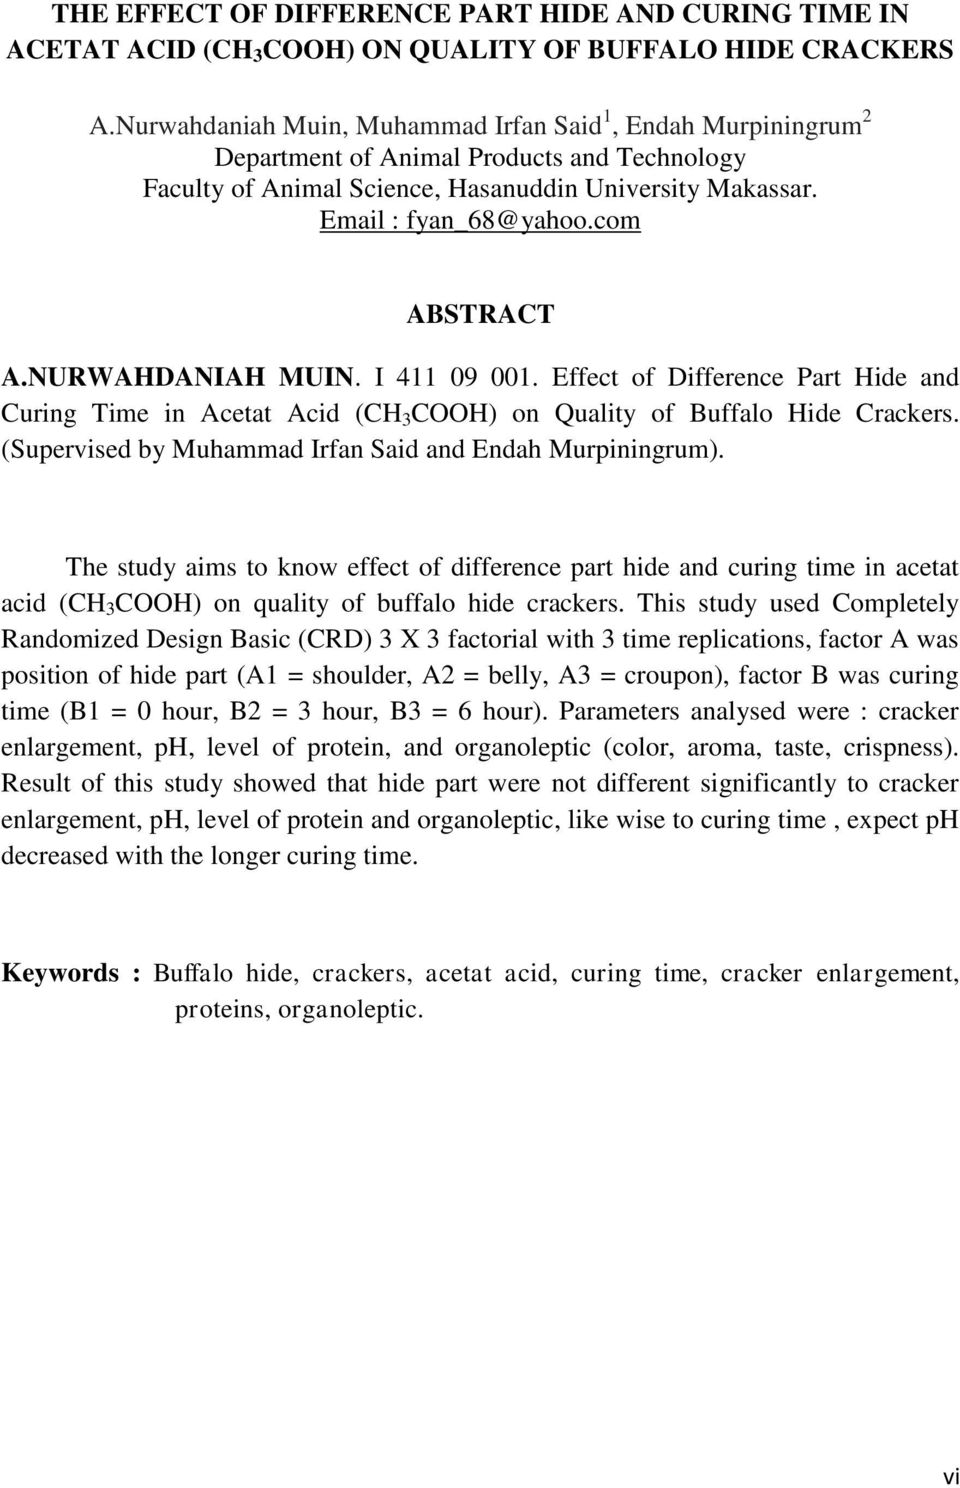 com ABSTRACT A.NURWAHDANIAH MUIN. I 411 09 001. Effect of Difference Part Hide and Curing Time in Acetat Acid (CH 3 COOH) on Quality of Buffalo Hide Crackers.